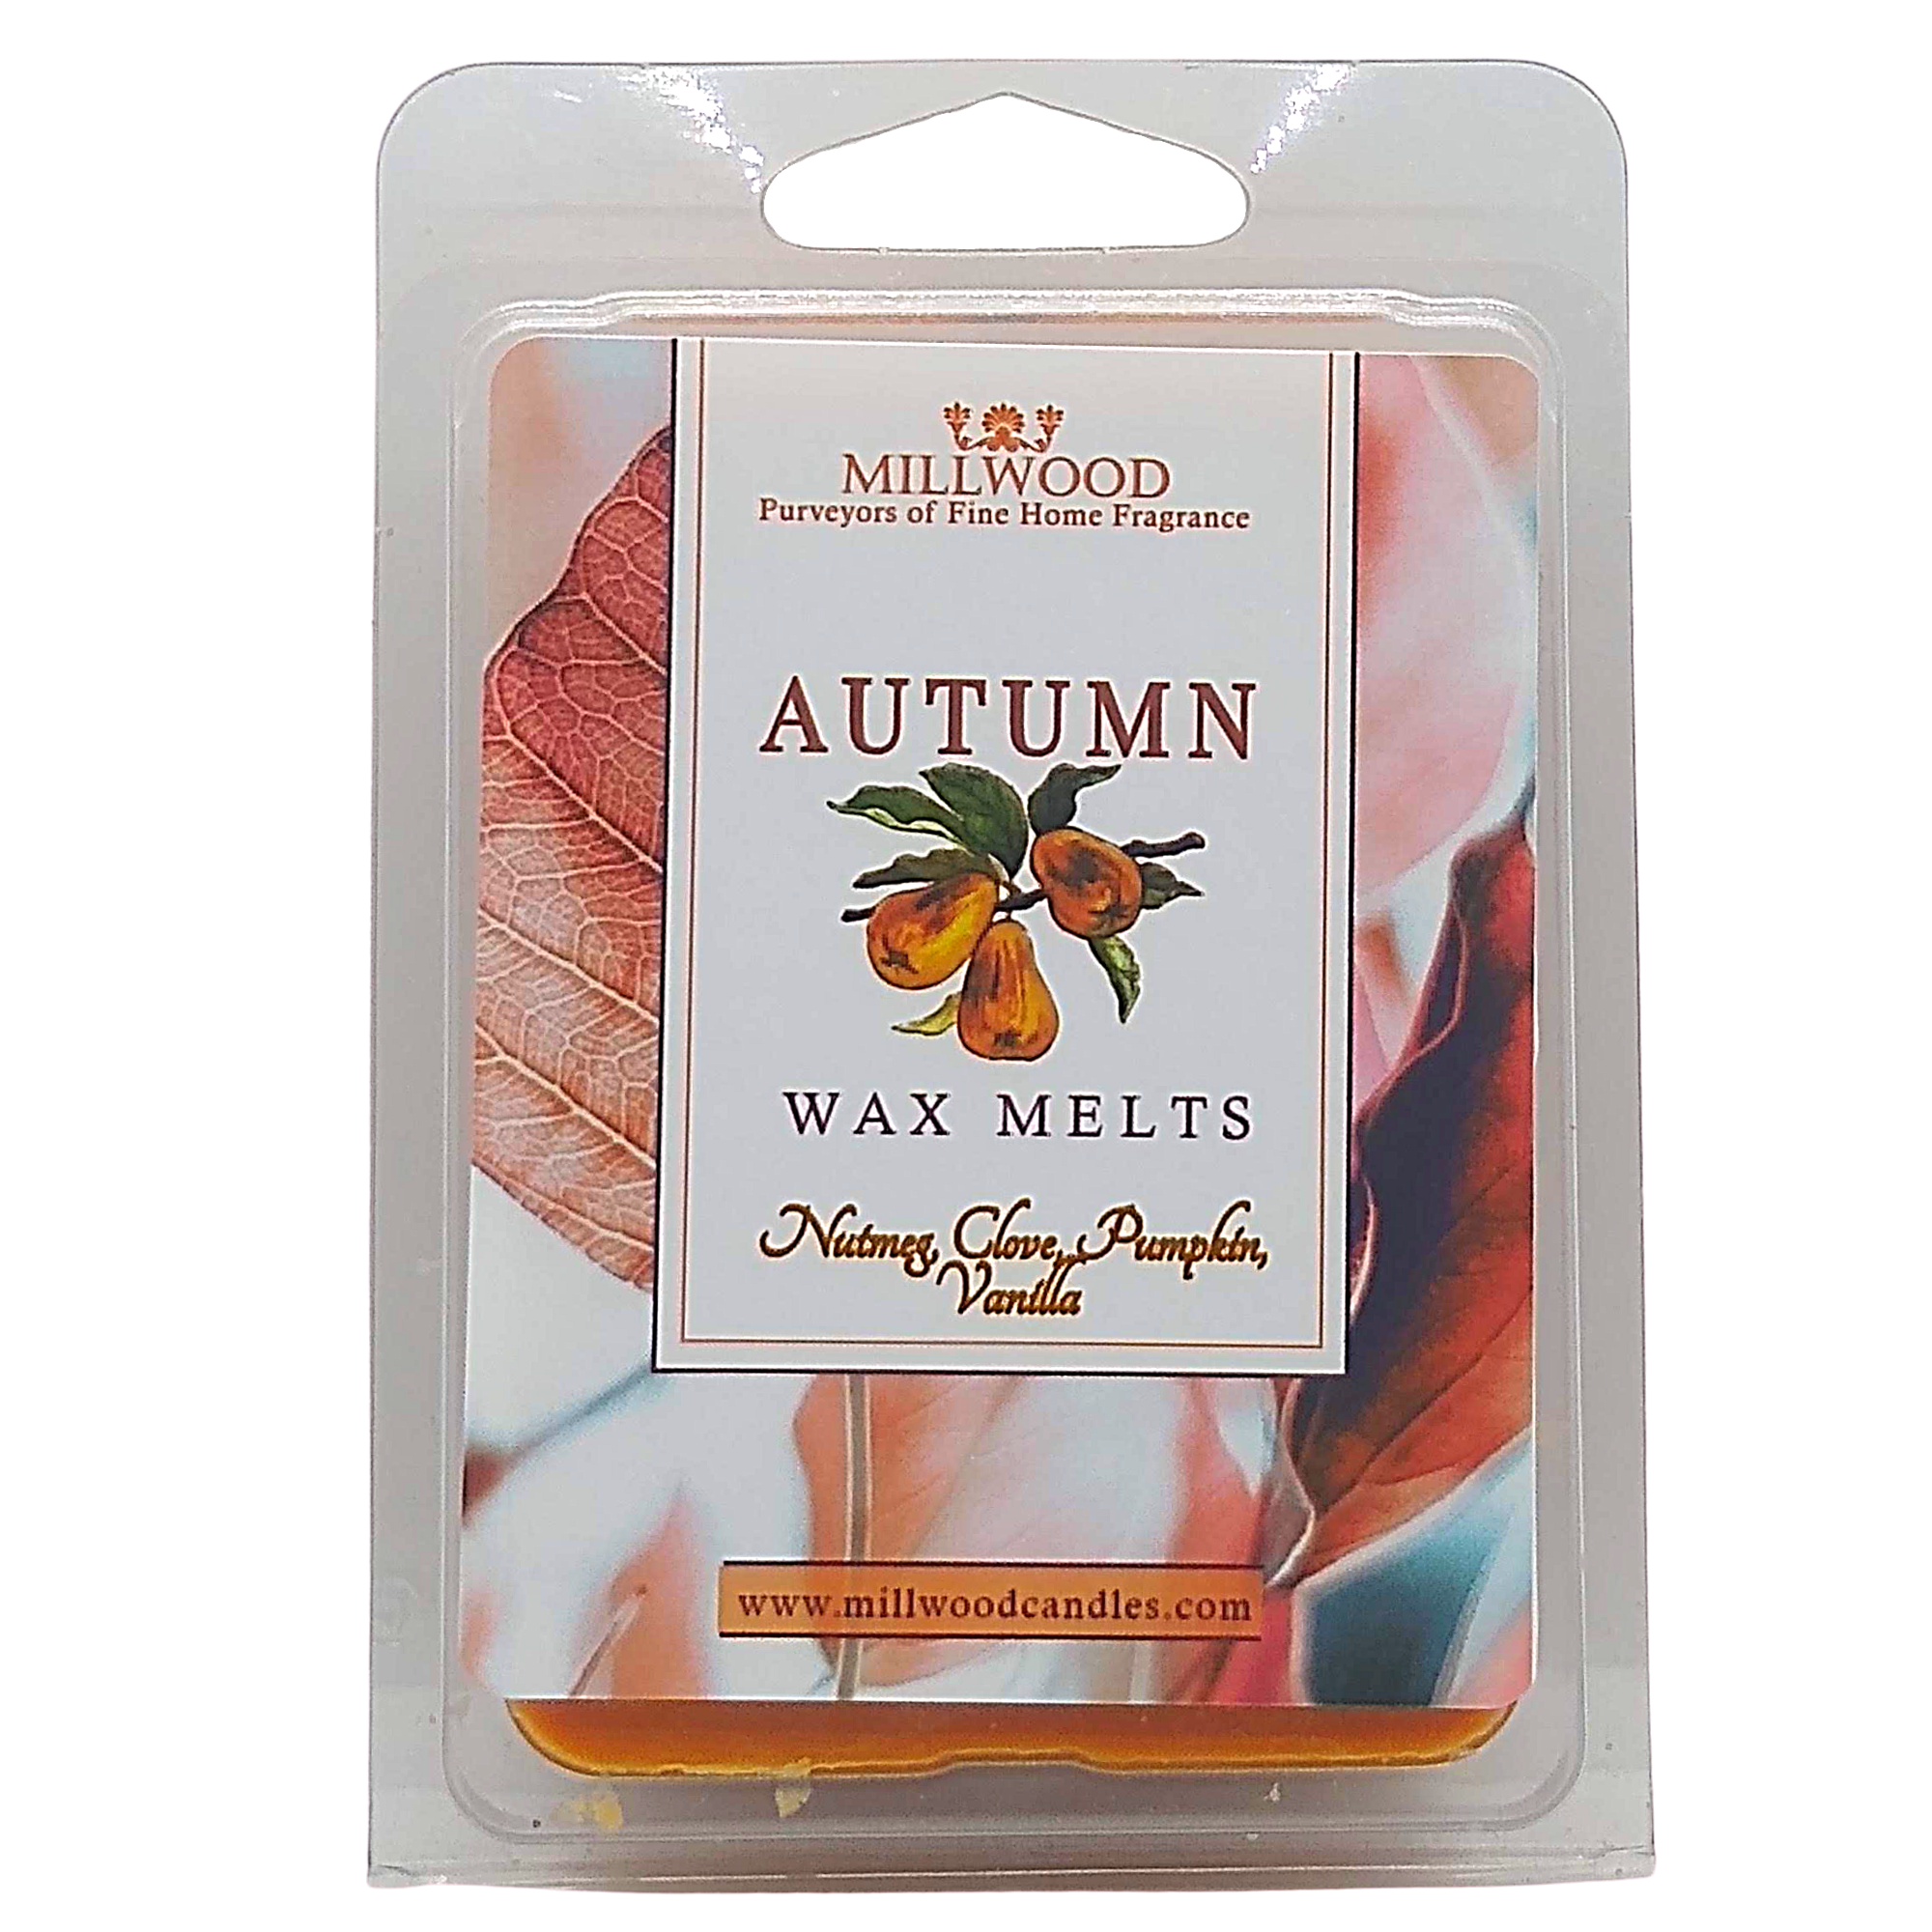 Millwood Candles Autumn Harvest Wax Melts